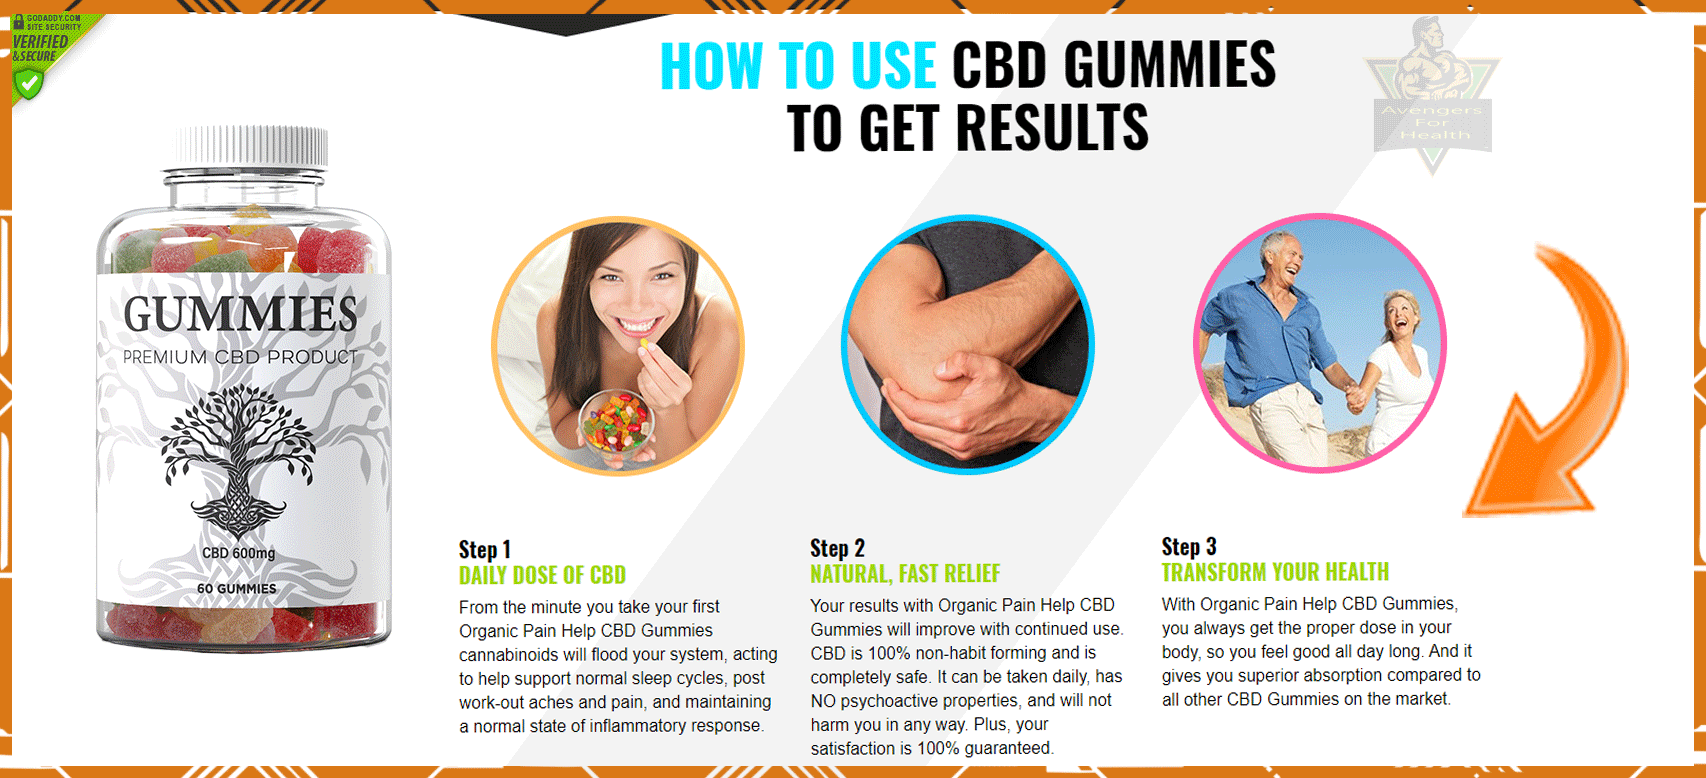 Organic Pain Help CBD Gummies #Joint Pain and Anxiety Relief